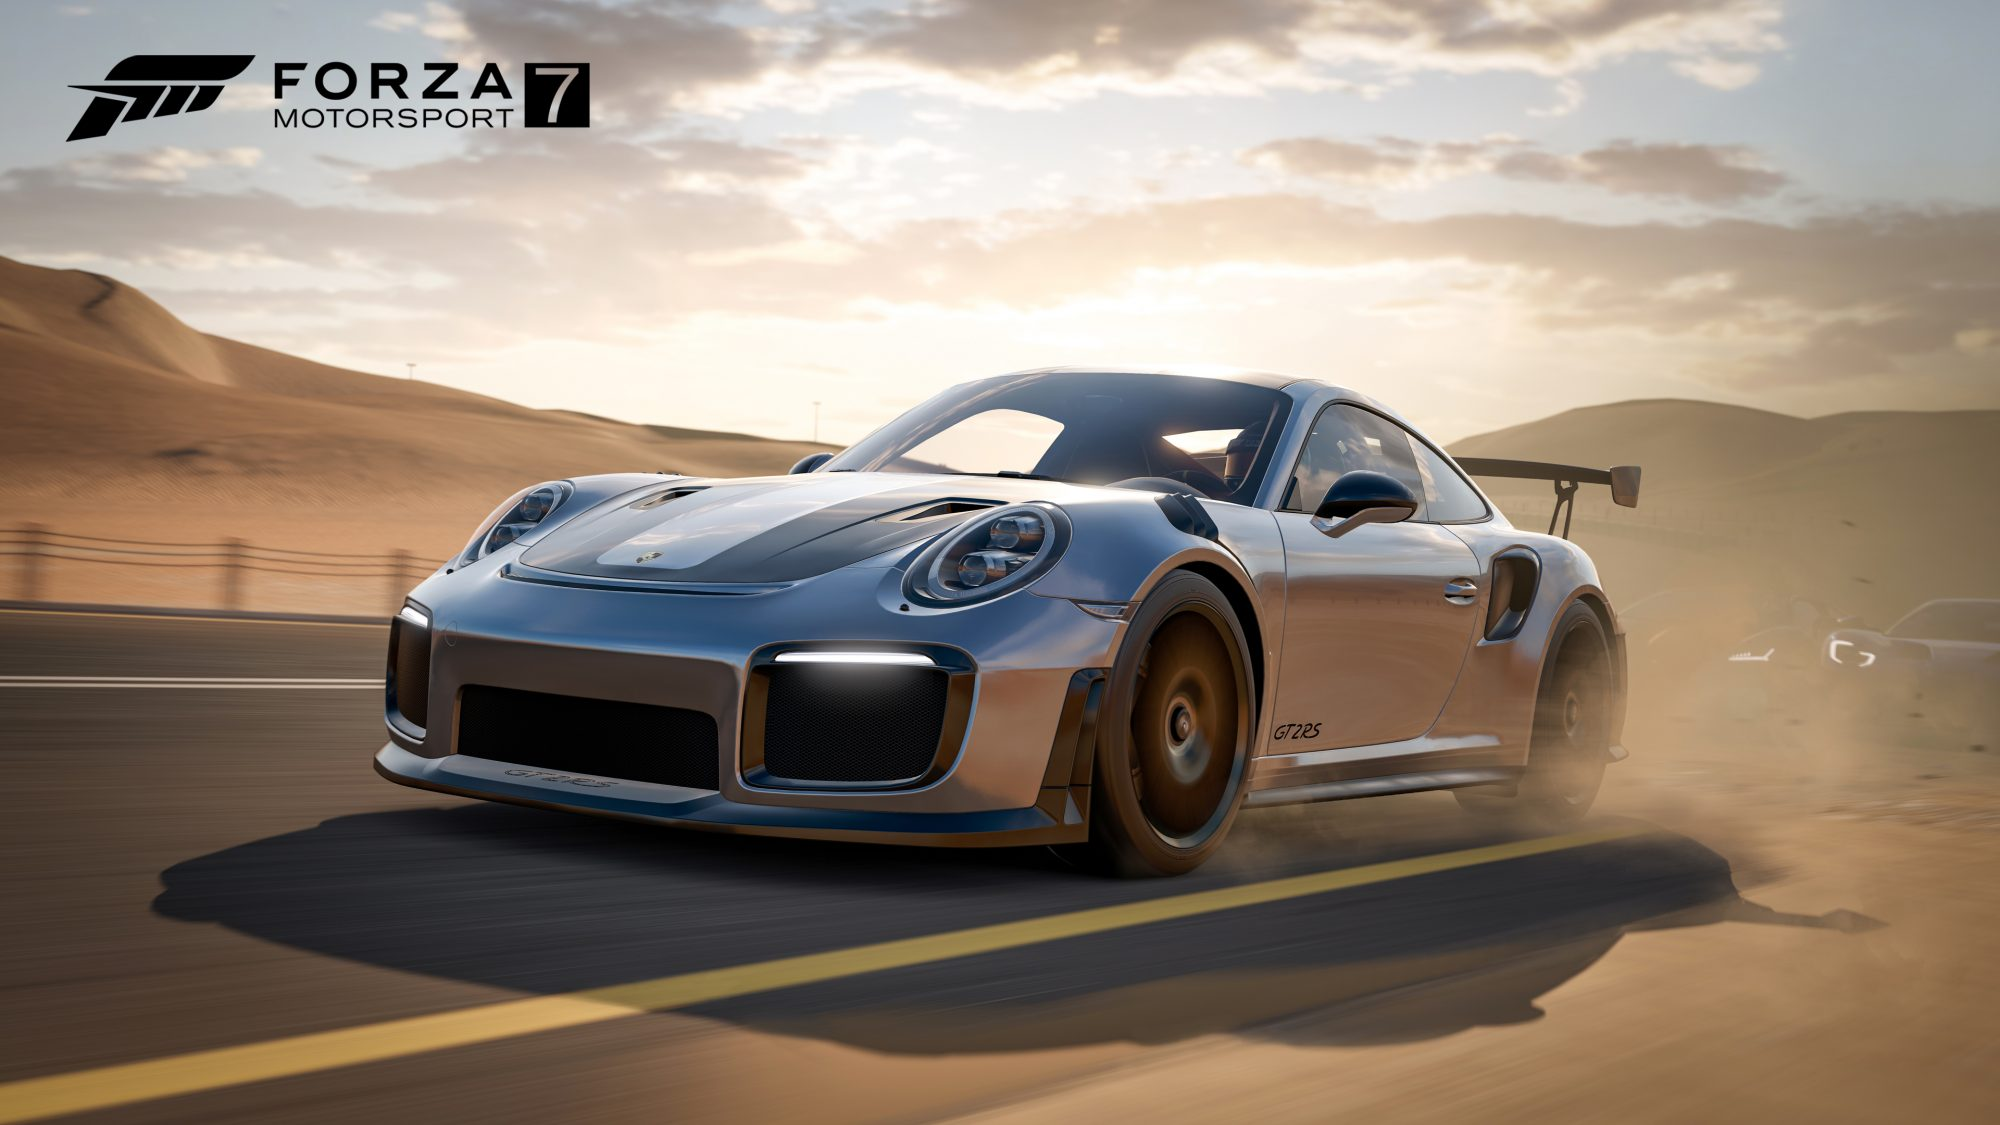 Forza Motorsport 7 Xbox One X PC Review Test 4